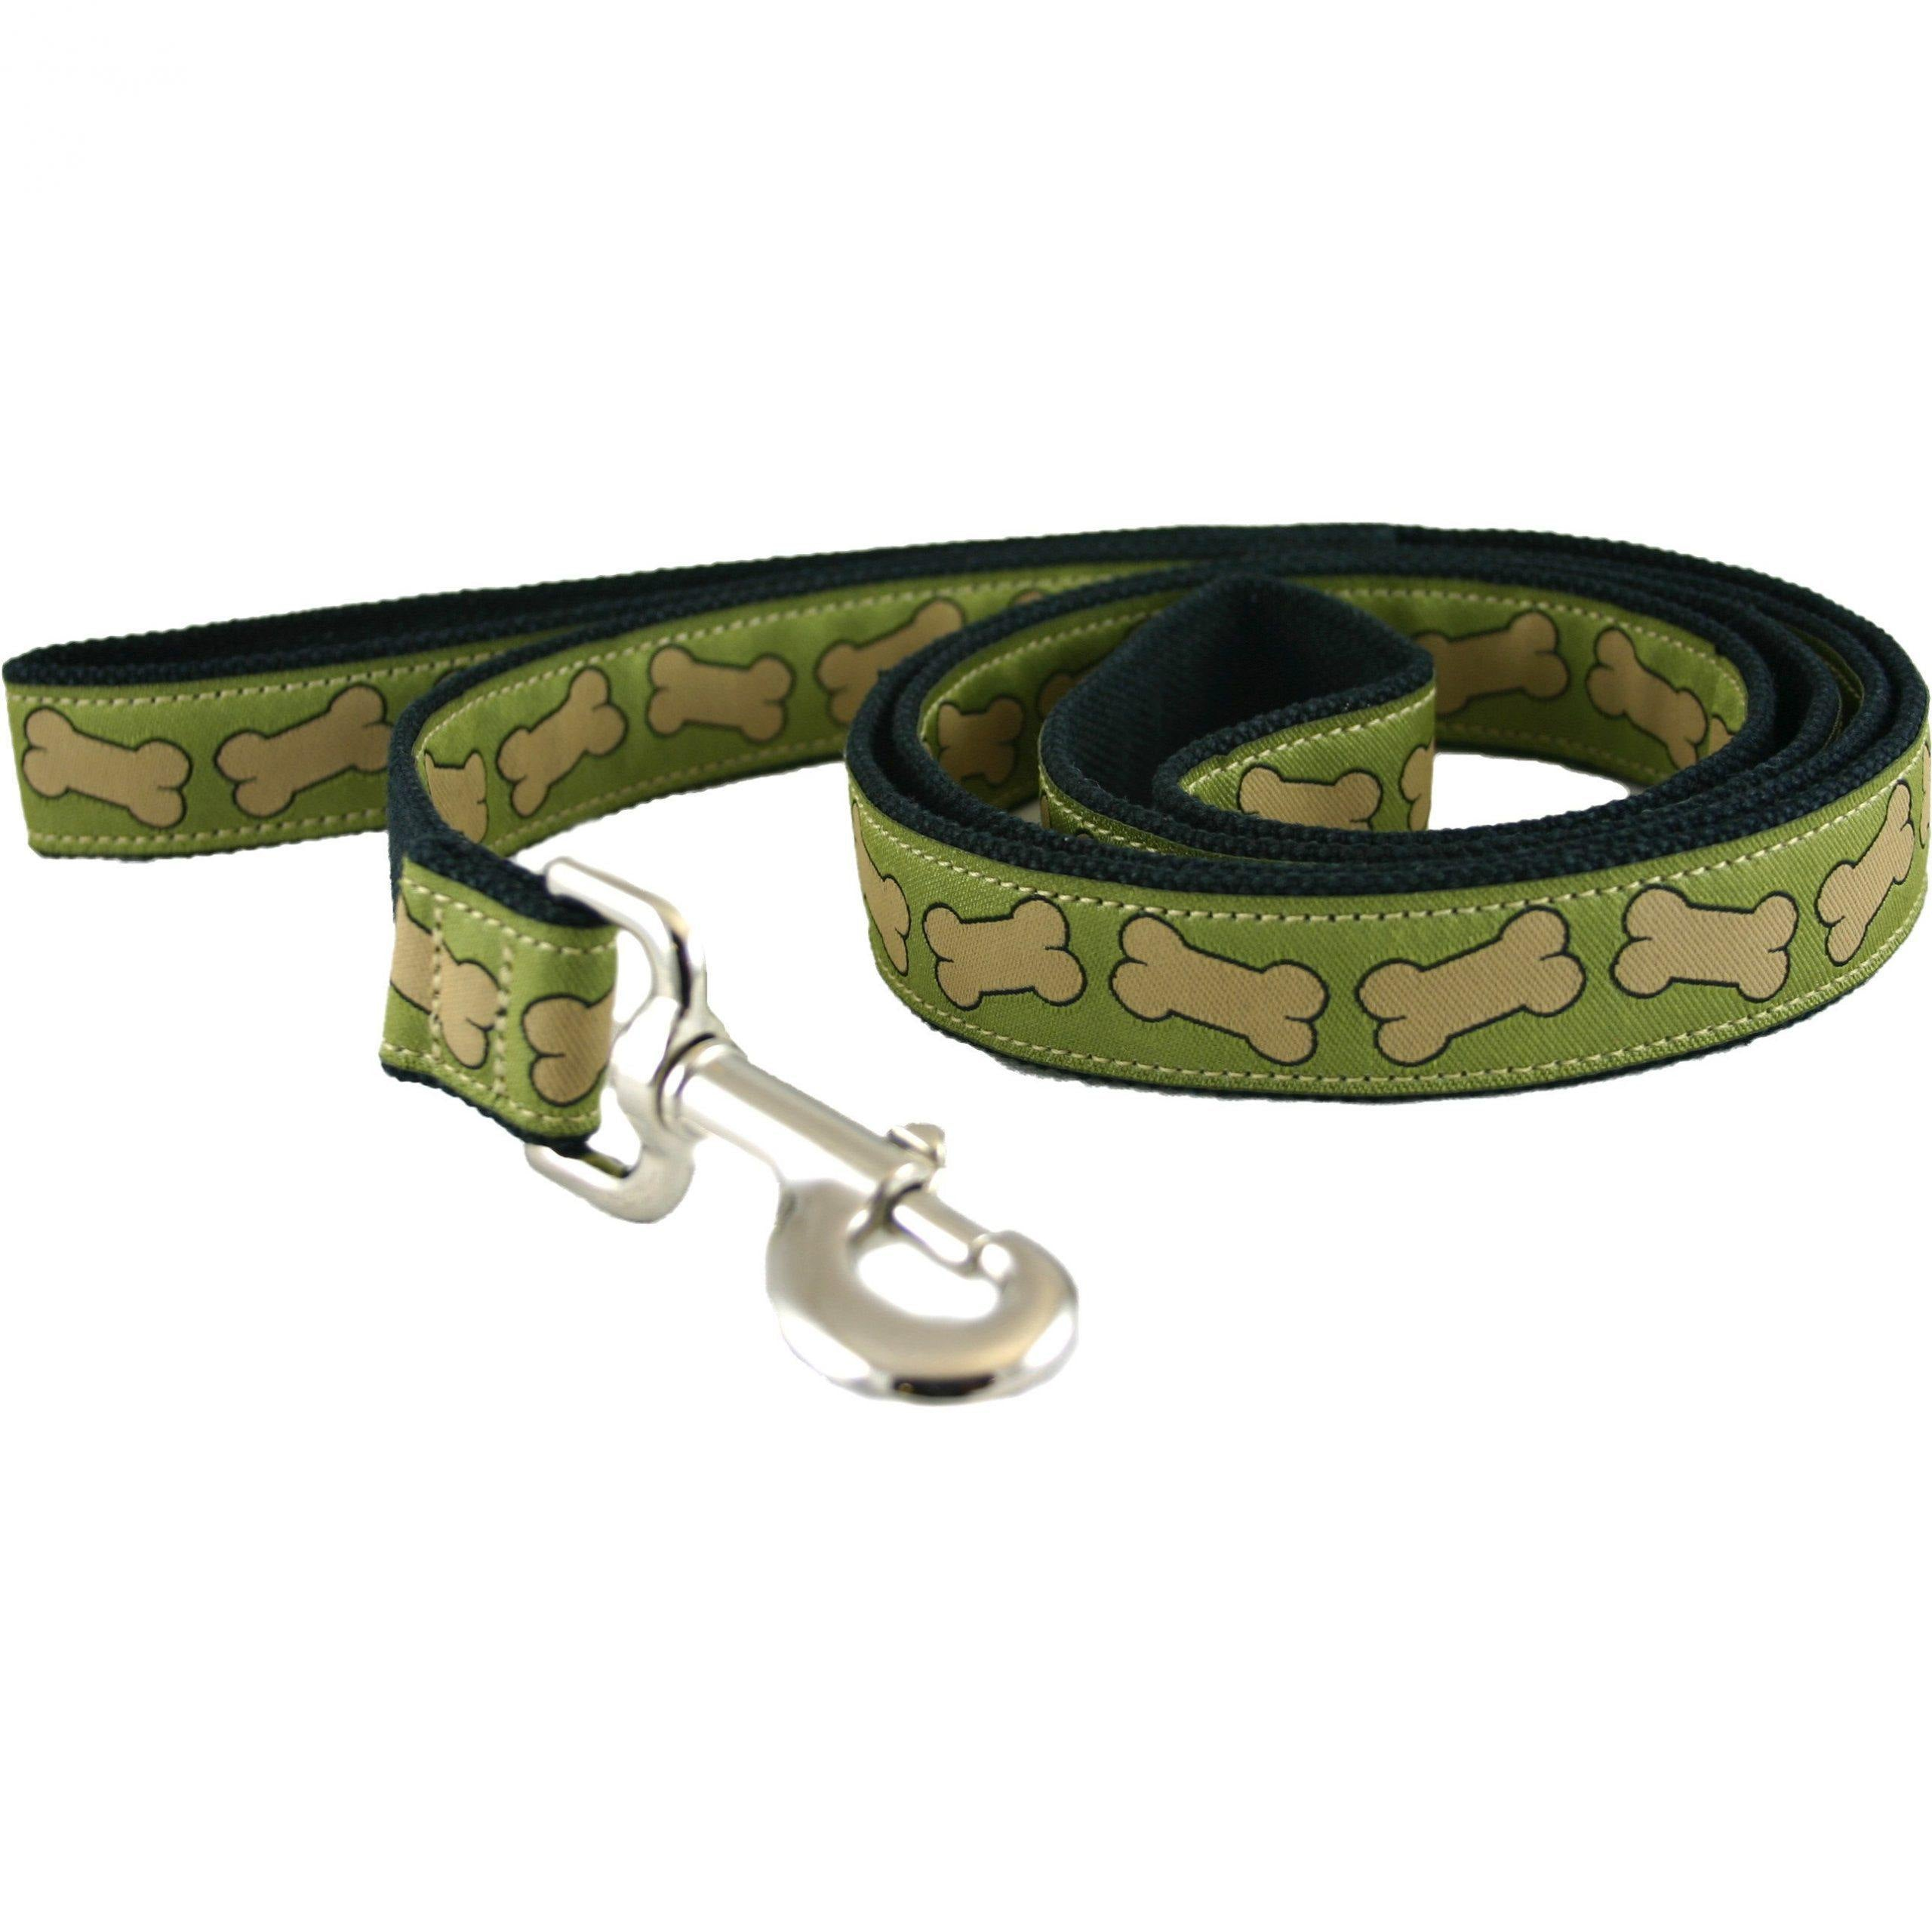 Good Dog Leash - 6ft